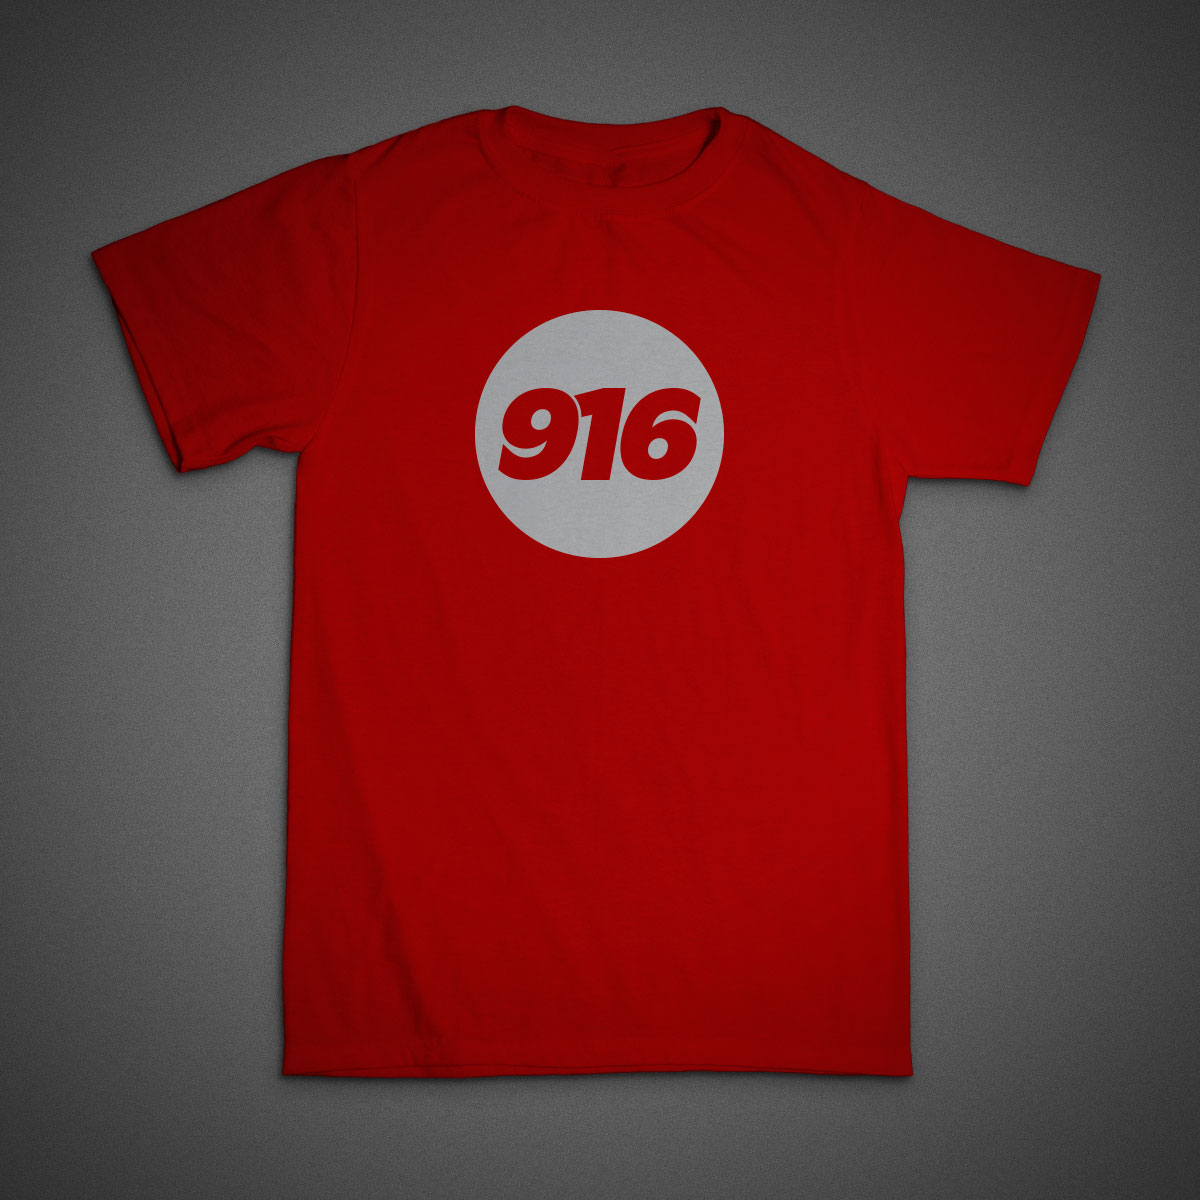 916-red-2